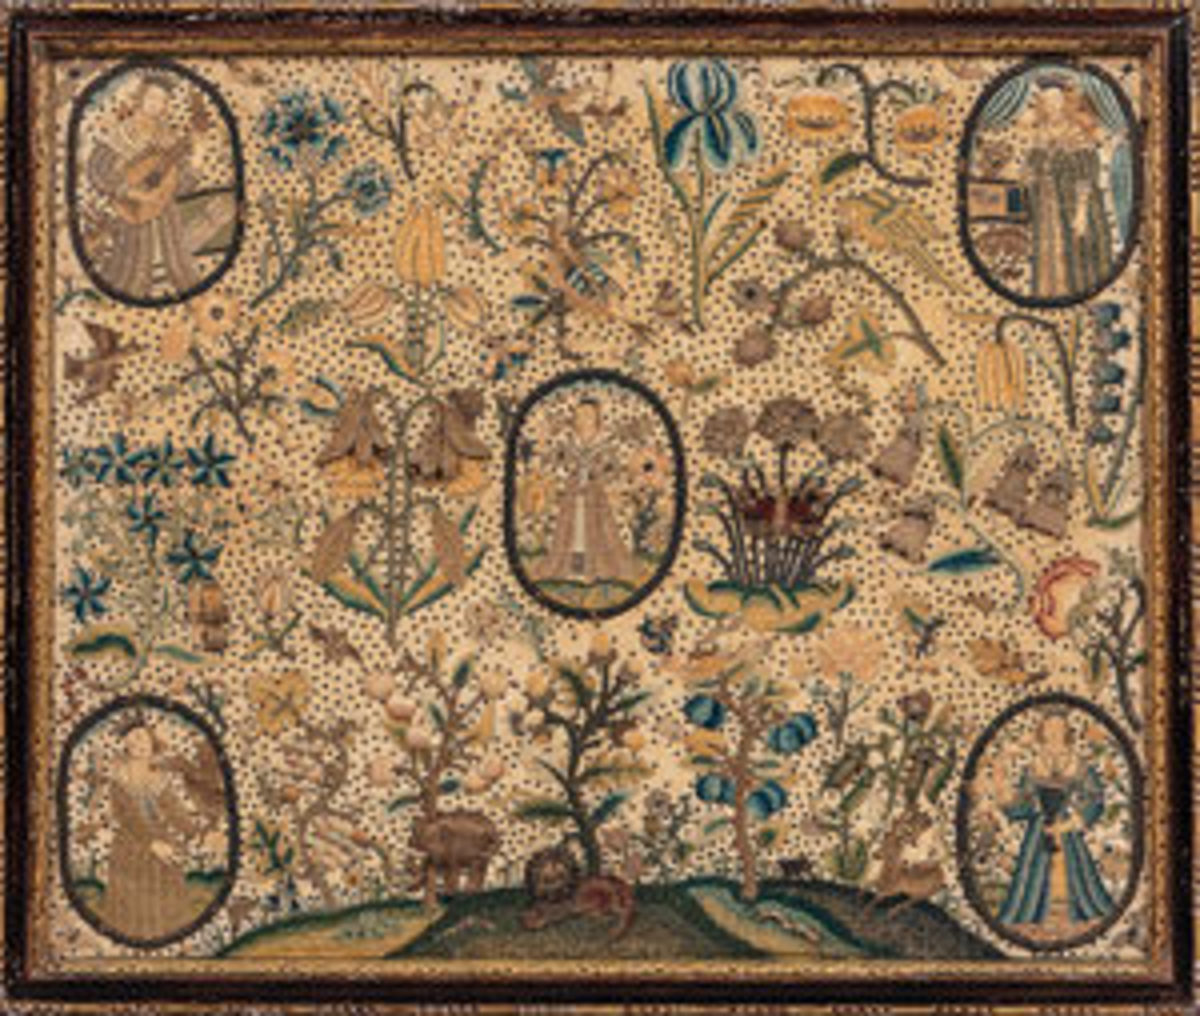 """The Five Senses"" stumpwork picture, England, 17th century, stitched in silk and metallic threads on a silk background depicting the five senses in oval vignettes against a background of flowers, fruit trees, birds, and animals, framed, 23-1/2"" h, 28"" w, sold at Skinner for $17,220 - thousands more than its estimate of $2,000-$4,000. Image courtesy of Skinner Auctioneers and Appraisers"